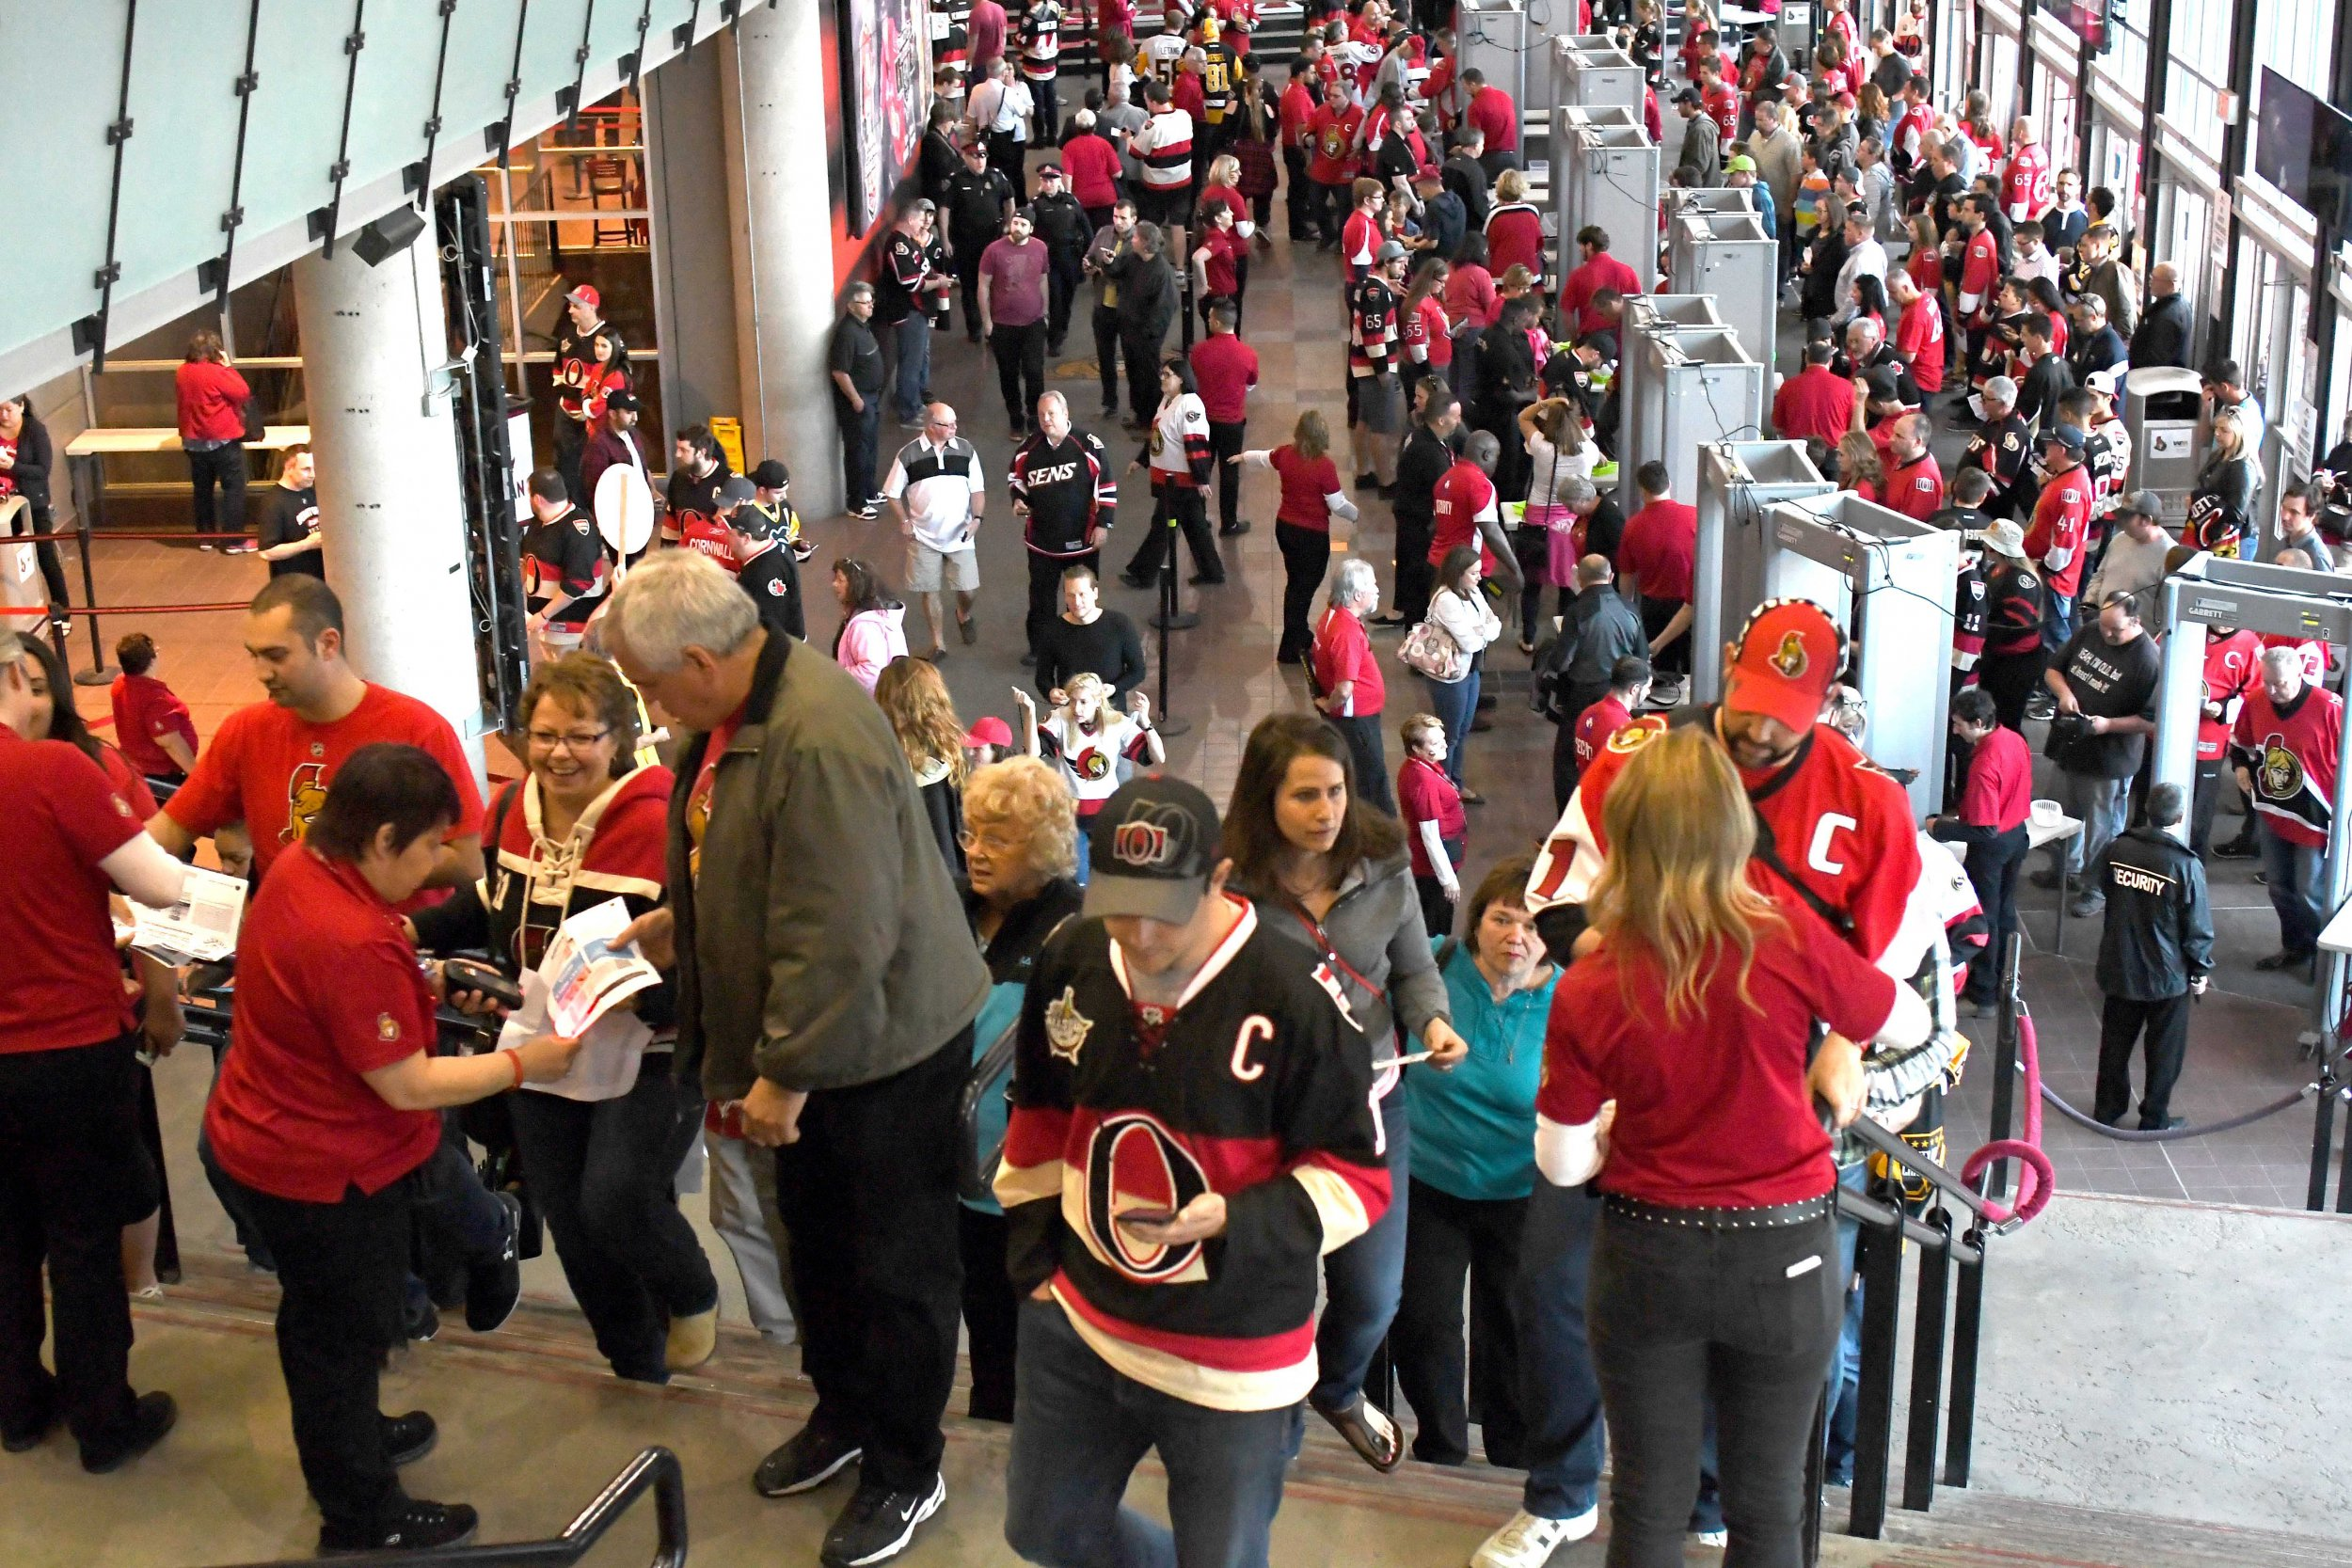 Hockey fans at Canadian Tire Centre, Ottawa, Canada, May 23.